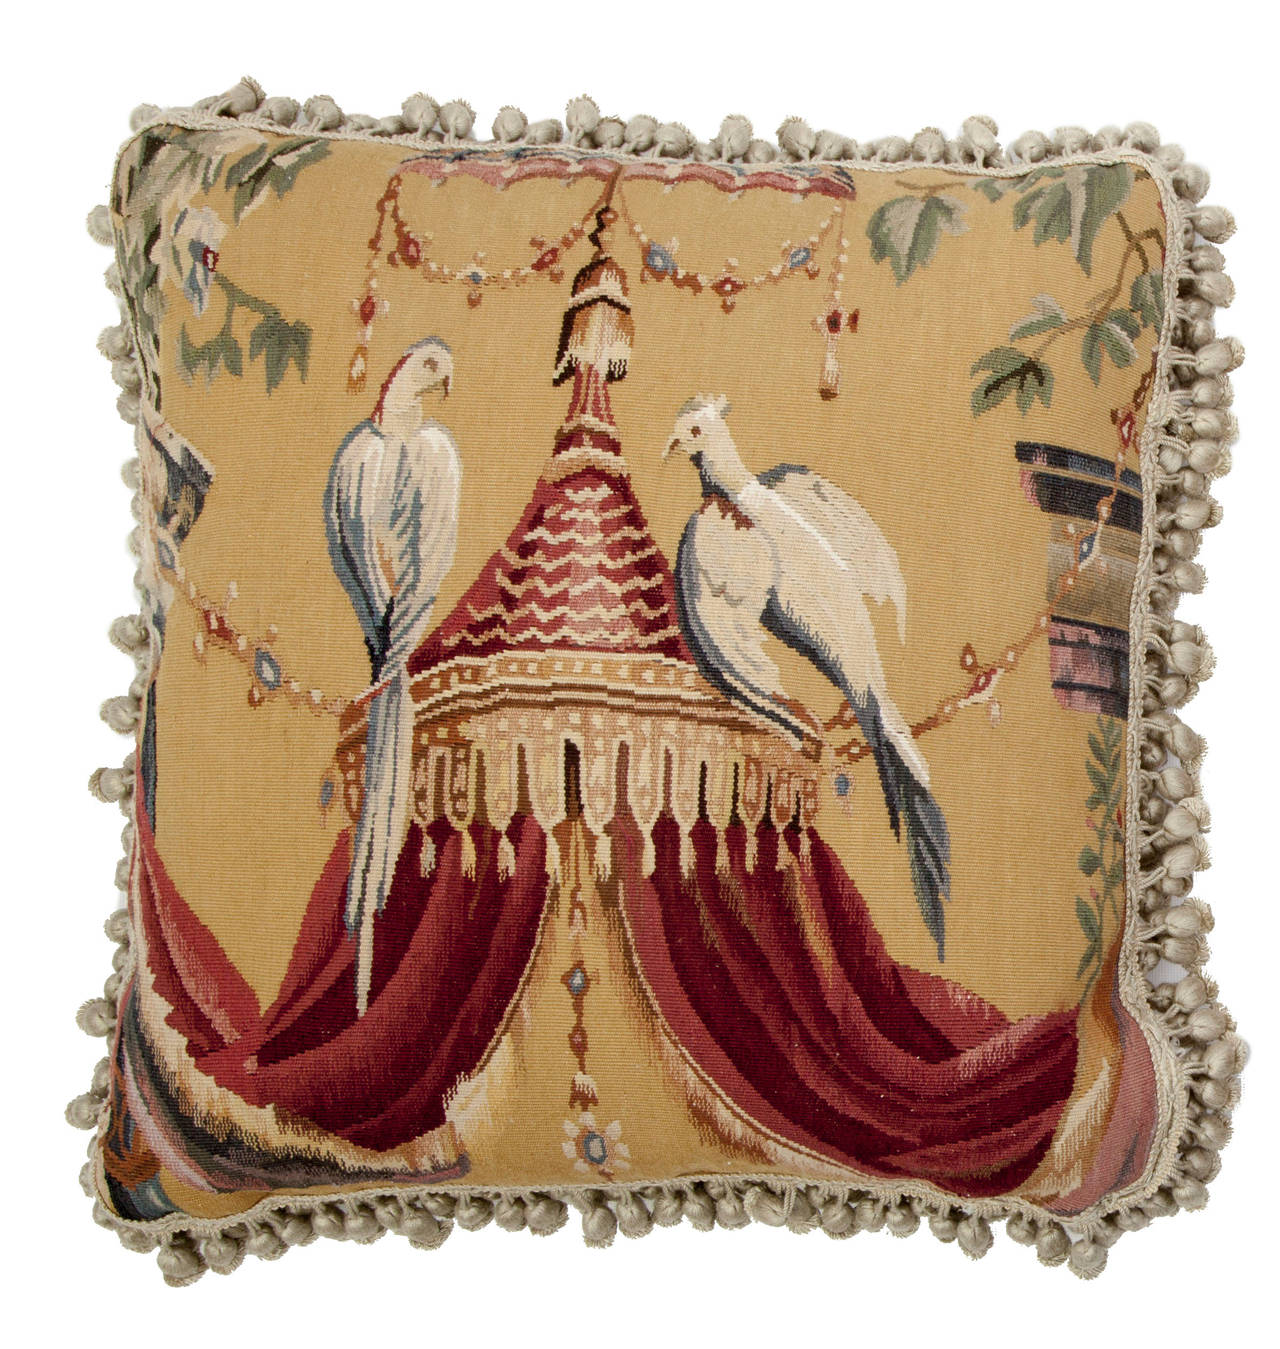 Two pictorial pillows made from fragments of the same Aubusson tapestry. One with doves perched atop an elaborate, draped baldaquin and the other Court Jester dancing to the music of an elaborately costumed violinist. Velvet backed with silk ball